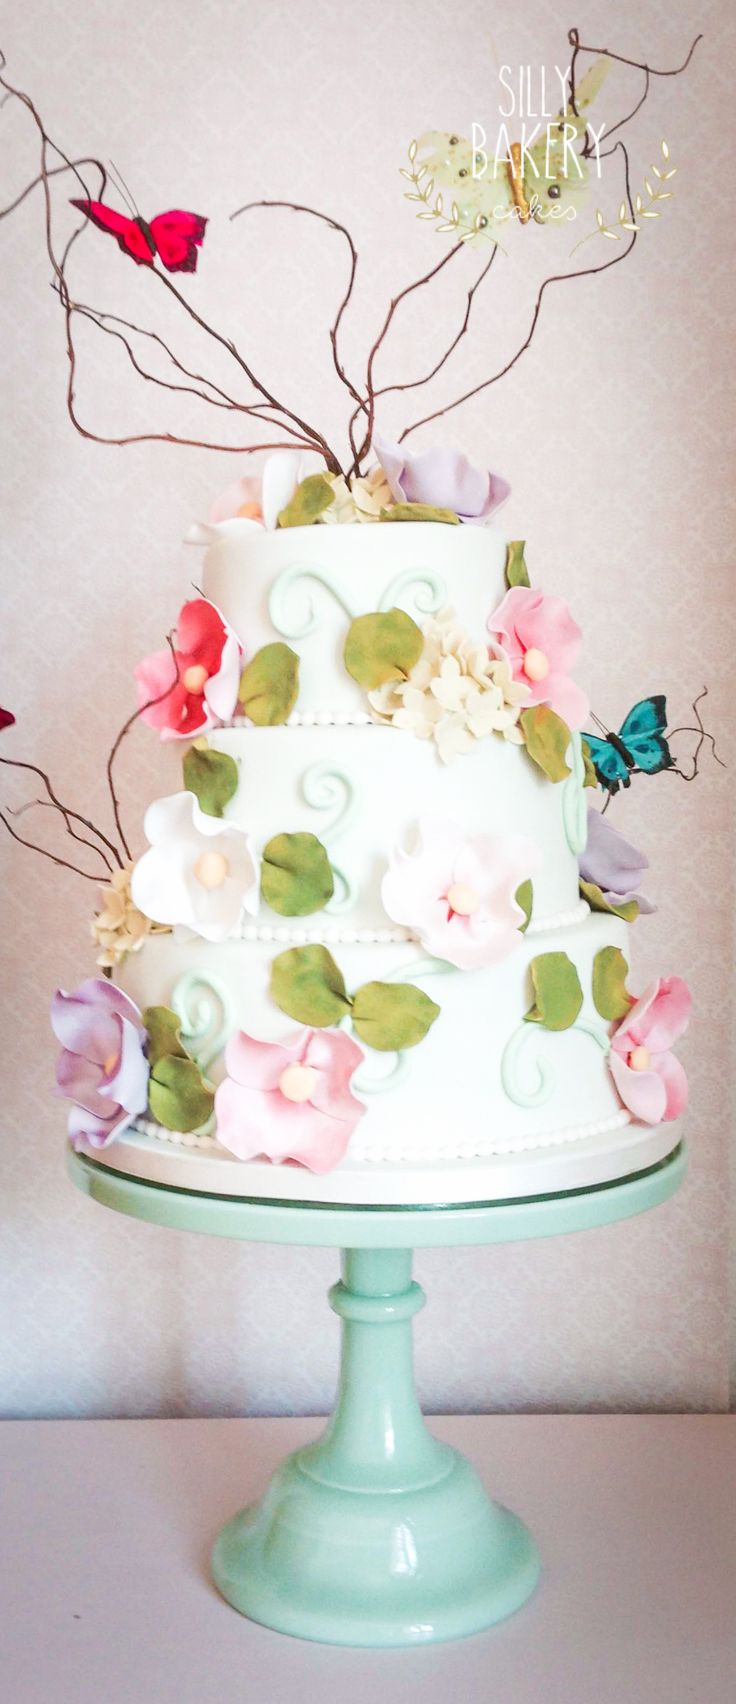 wedding-cakes-14-07142015-km